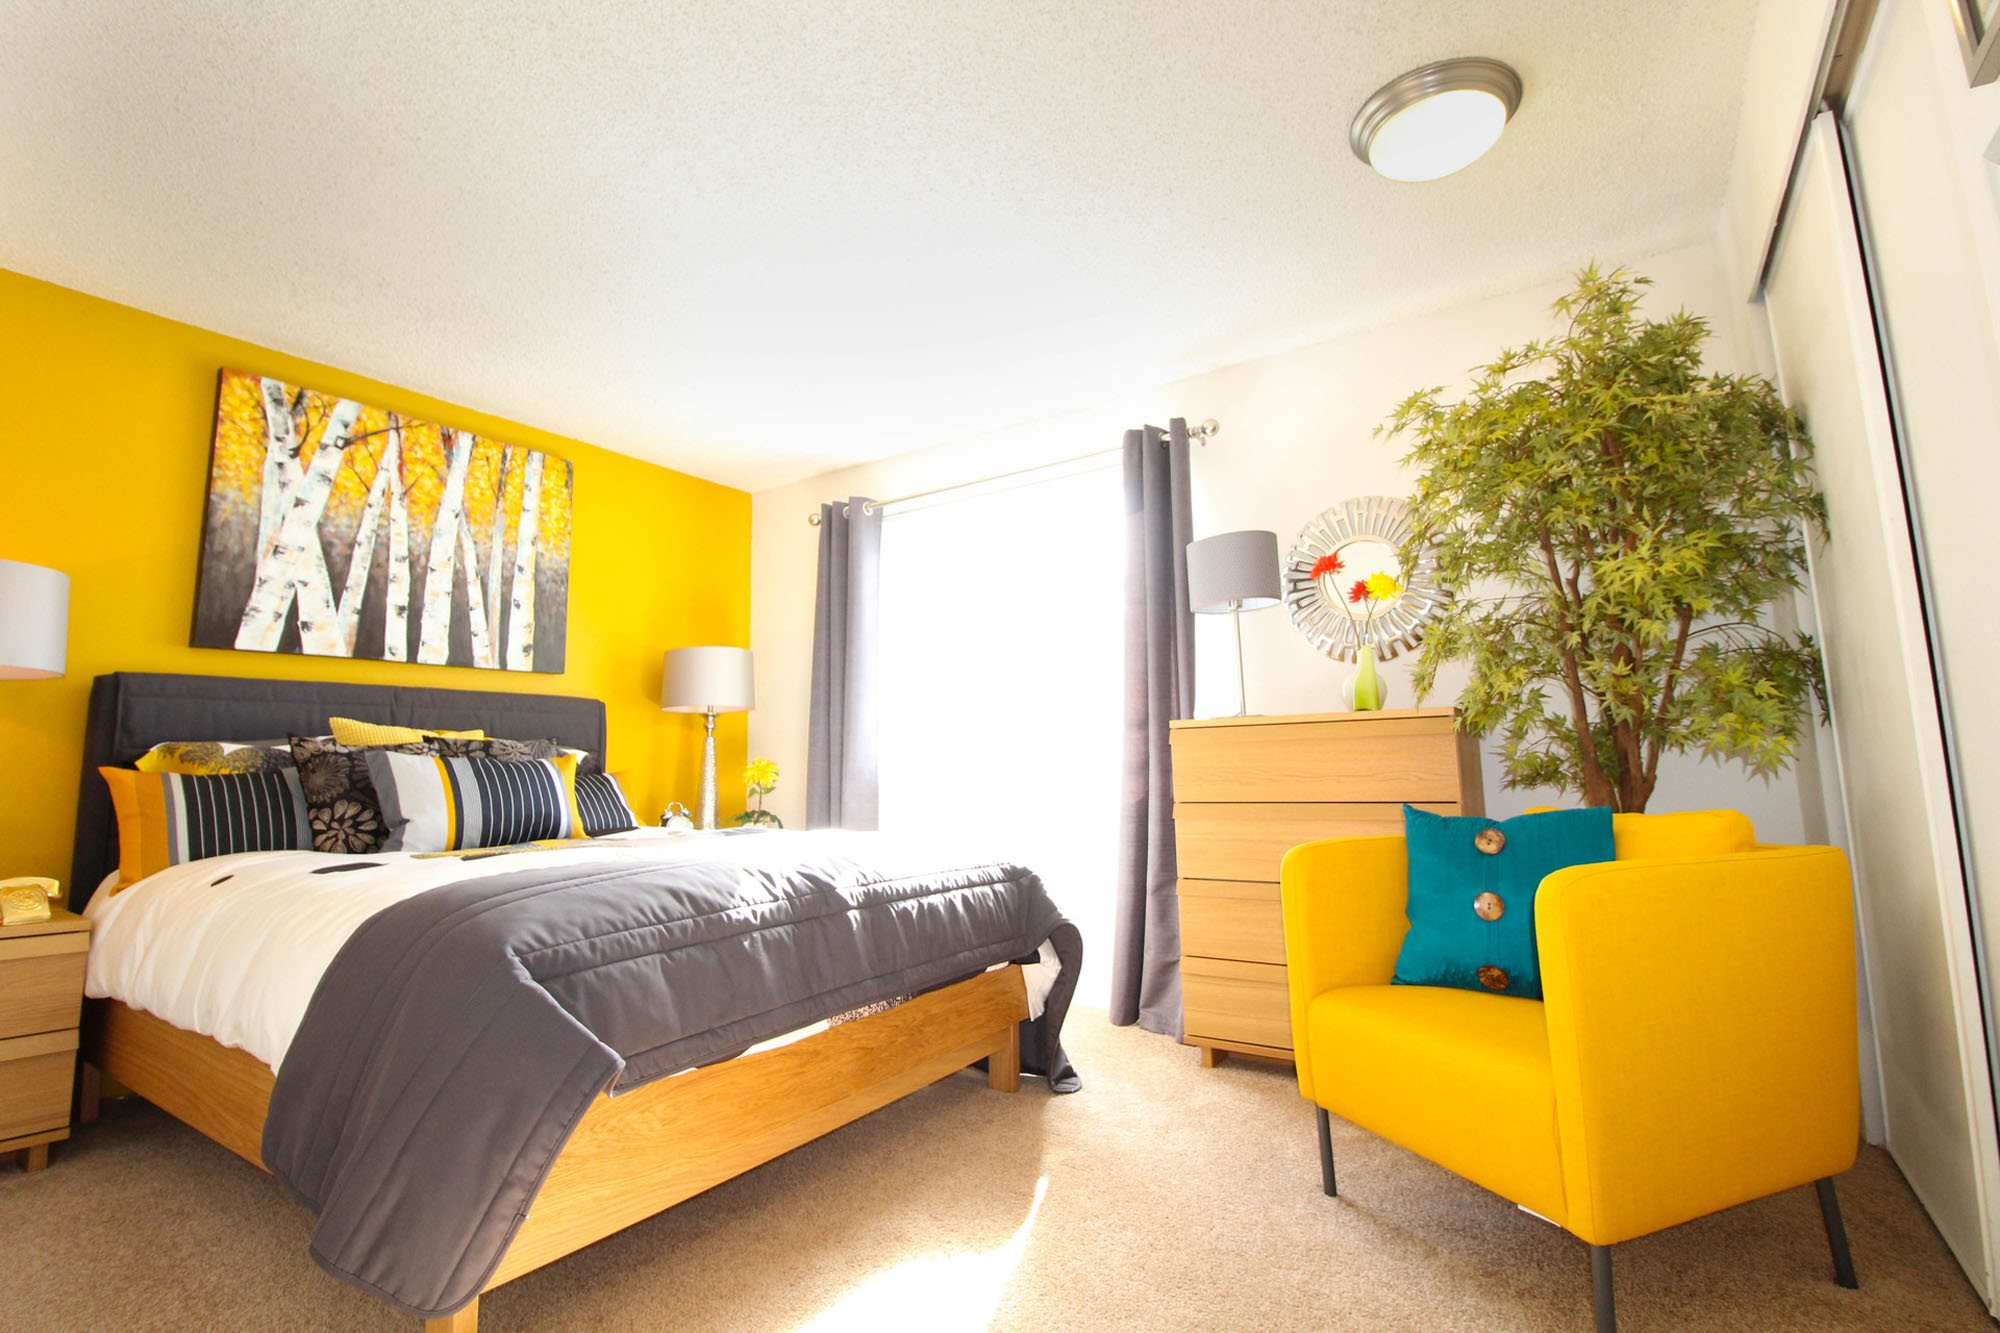 The Becket | Apartments in Renton, WA